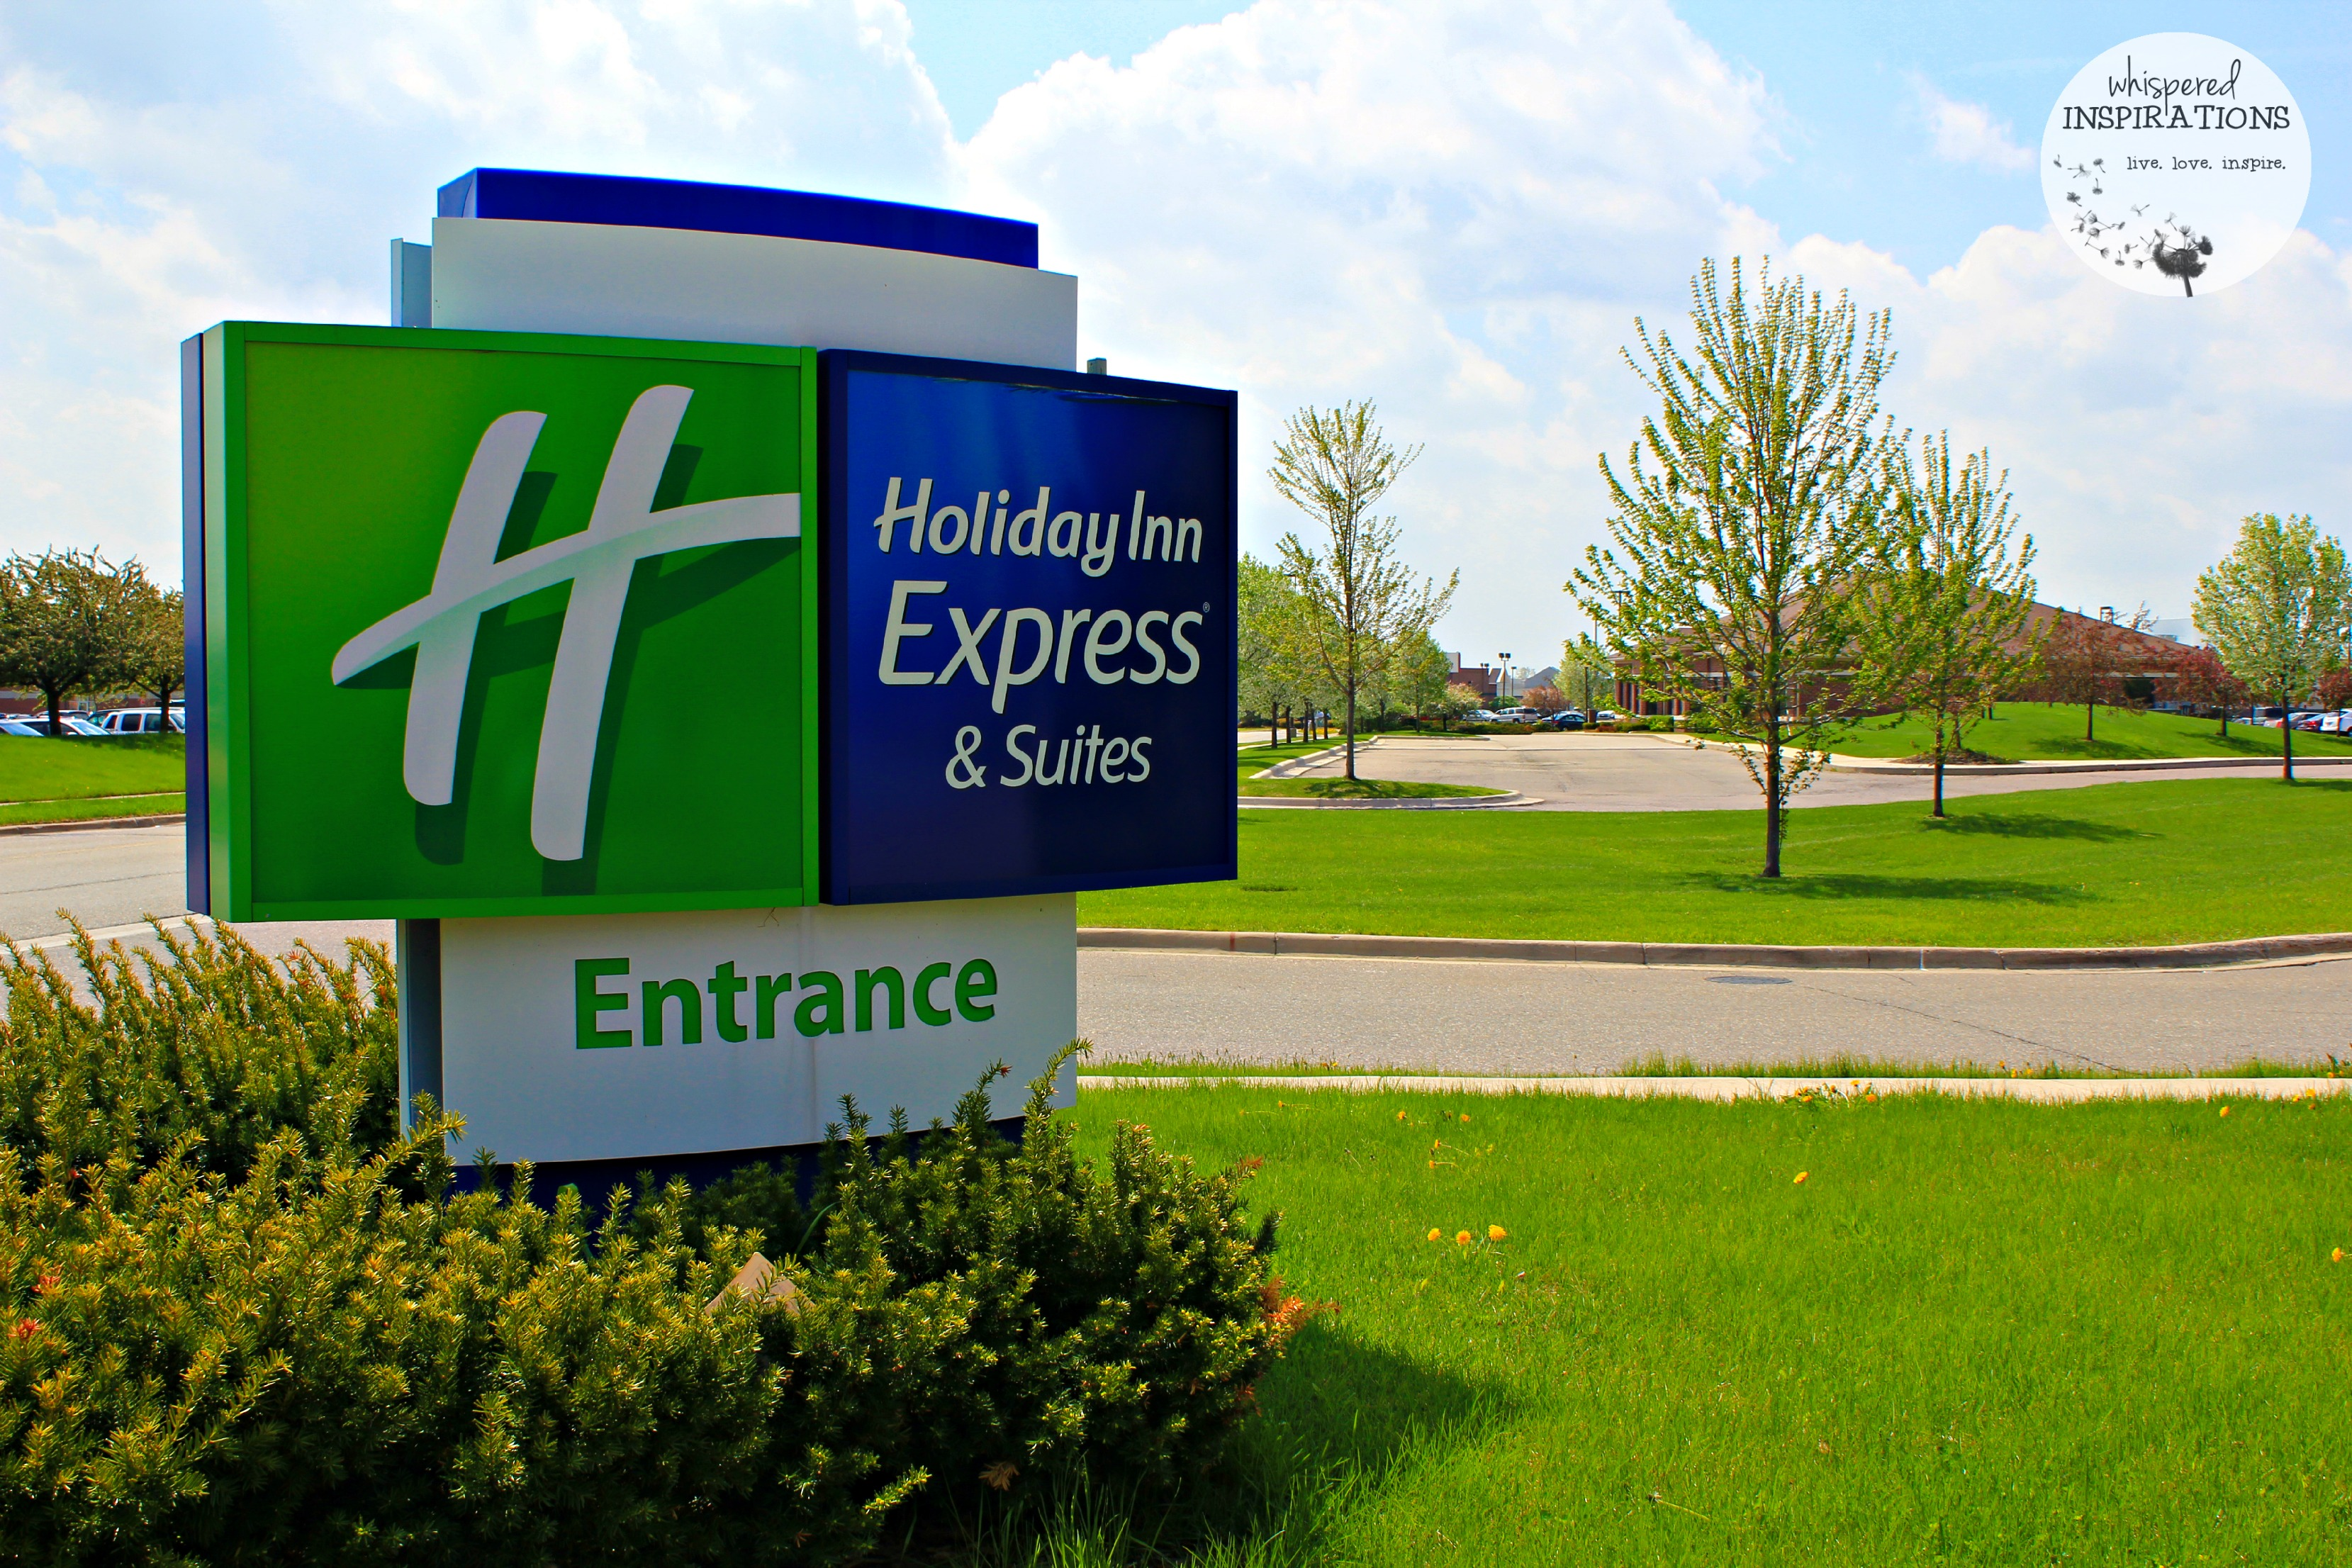 Holiday Inn Express Utica: Clean, Convenient, Spacious and PERFECT for a Staycation or Business Traveler! #travel